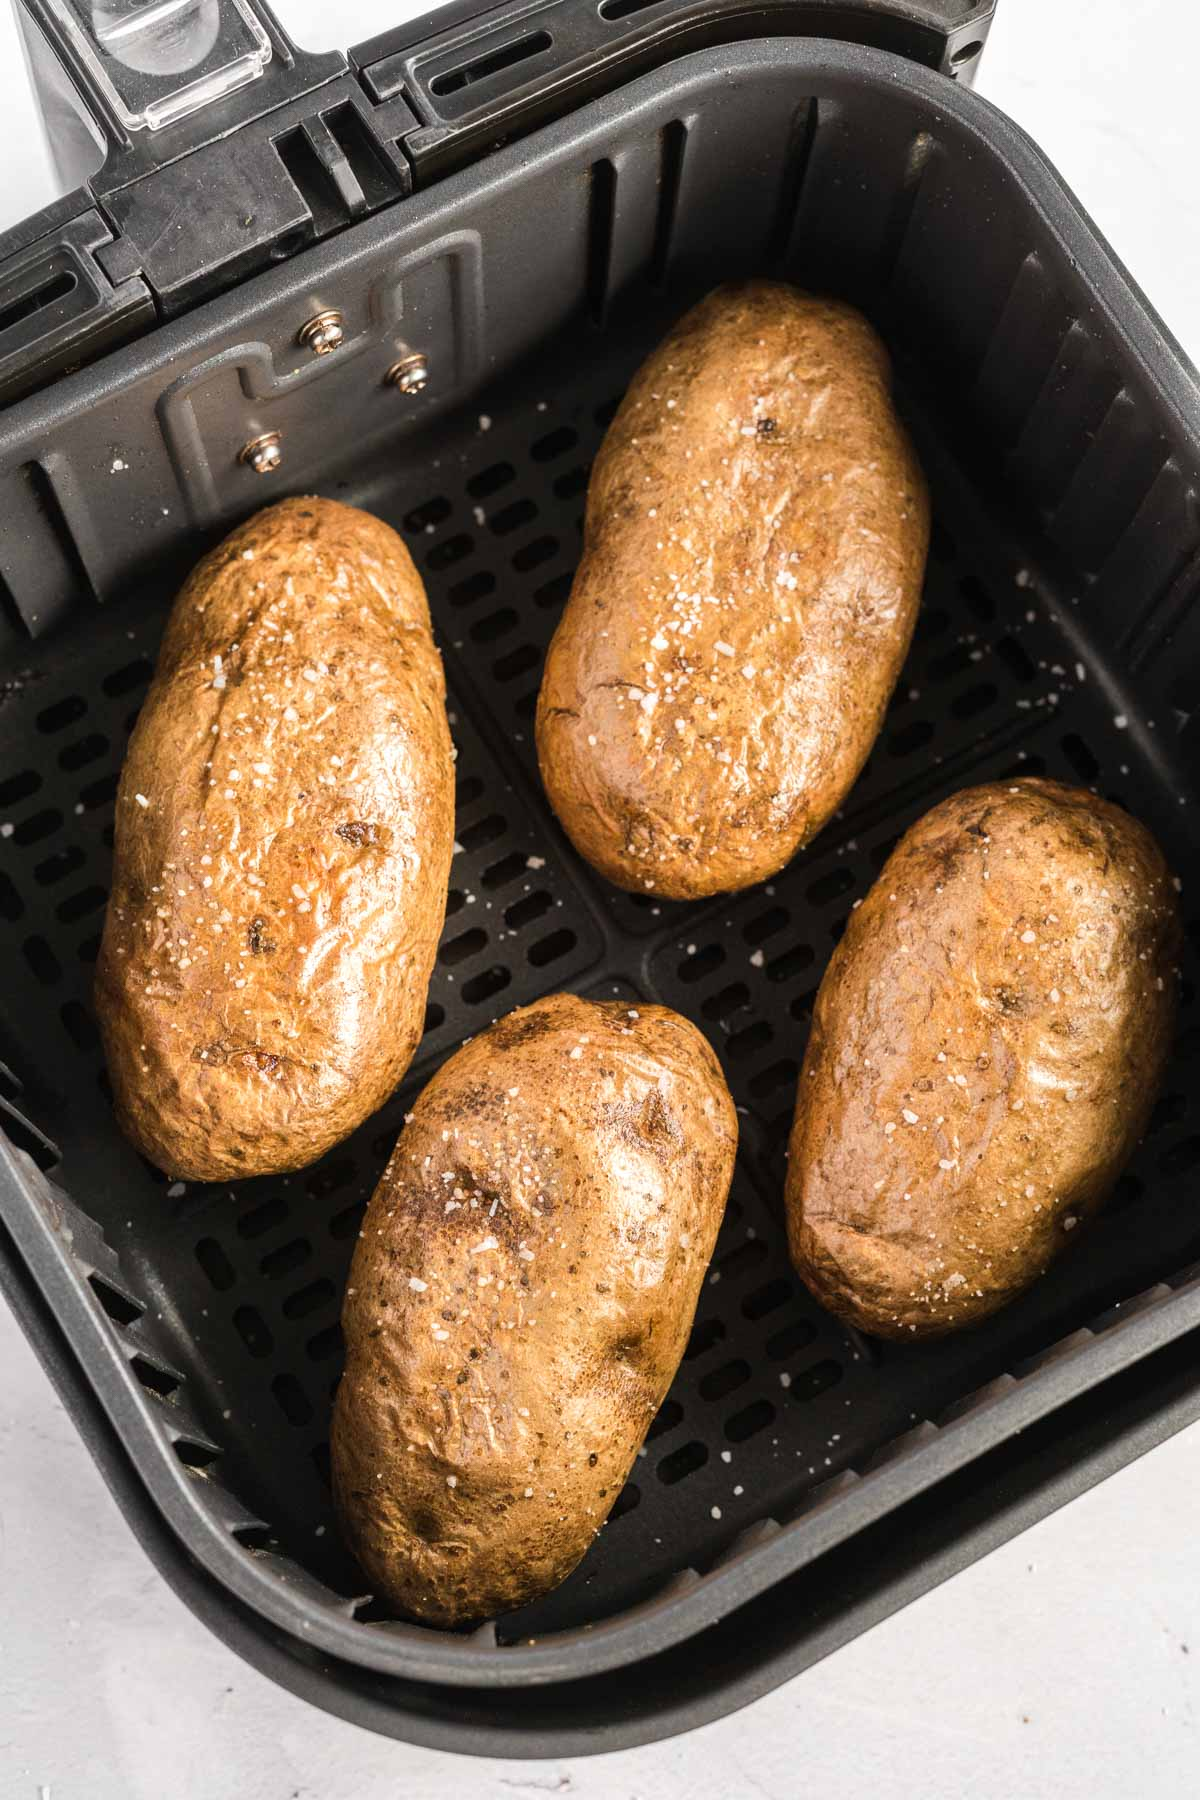 Four baked potatoes in an air fryer basket.